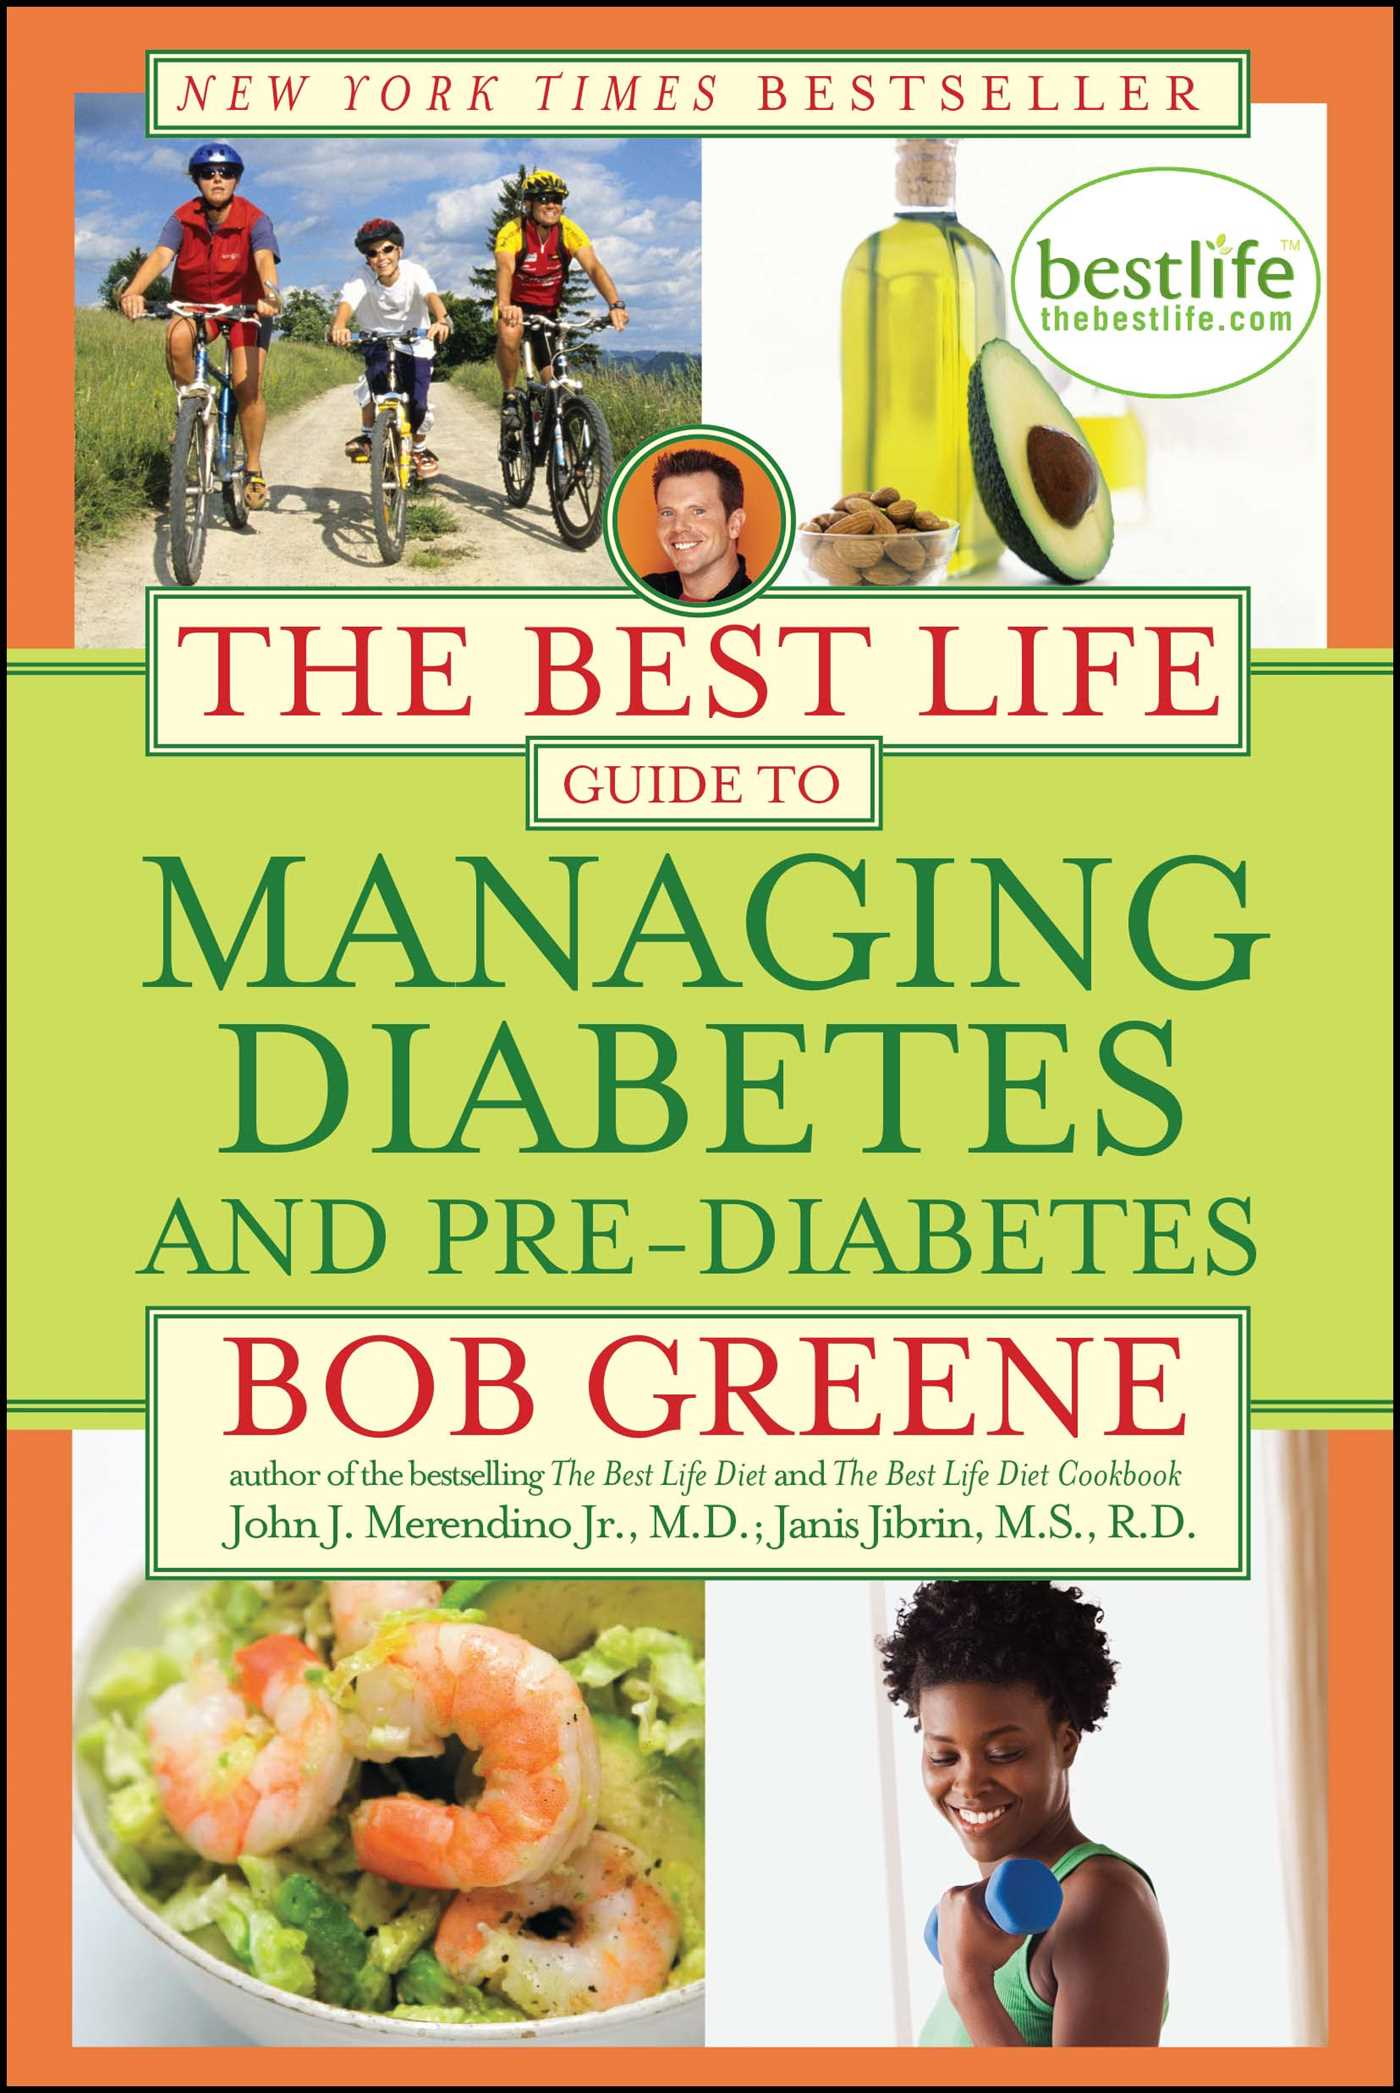 The best life guide to managing diabetes and pre diabetes 9781416588399 hr